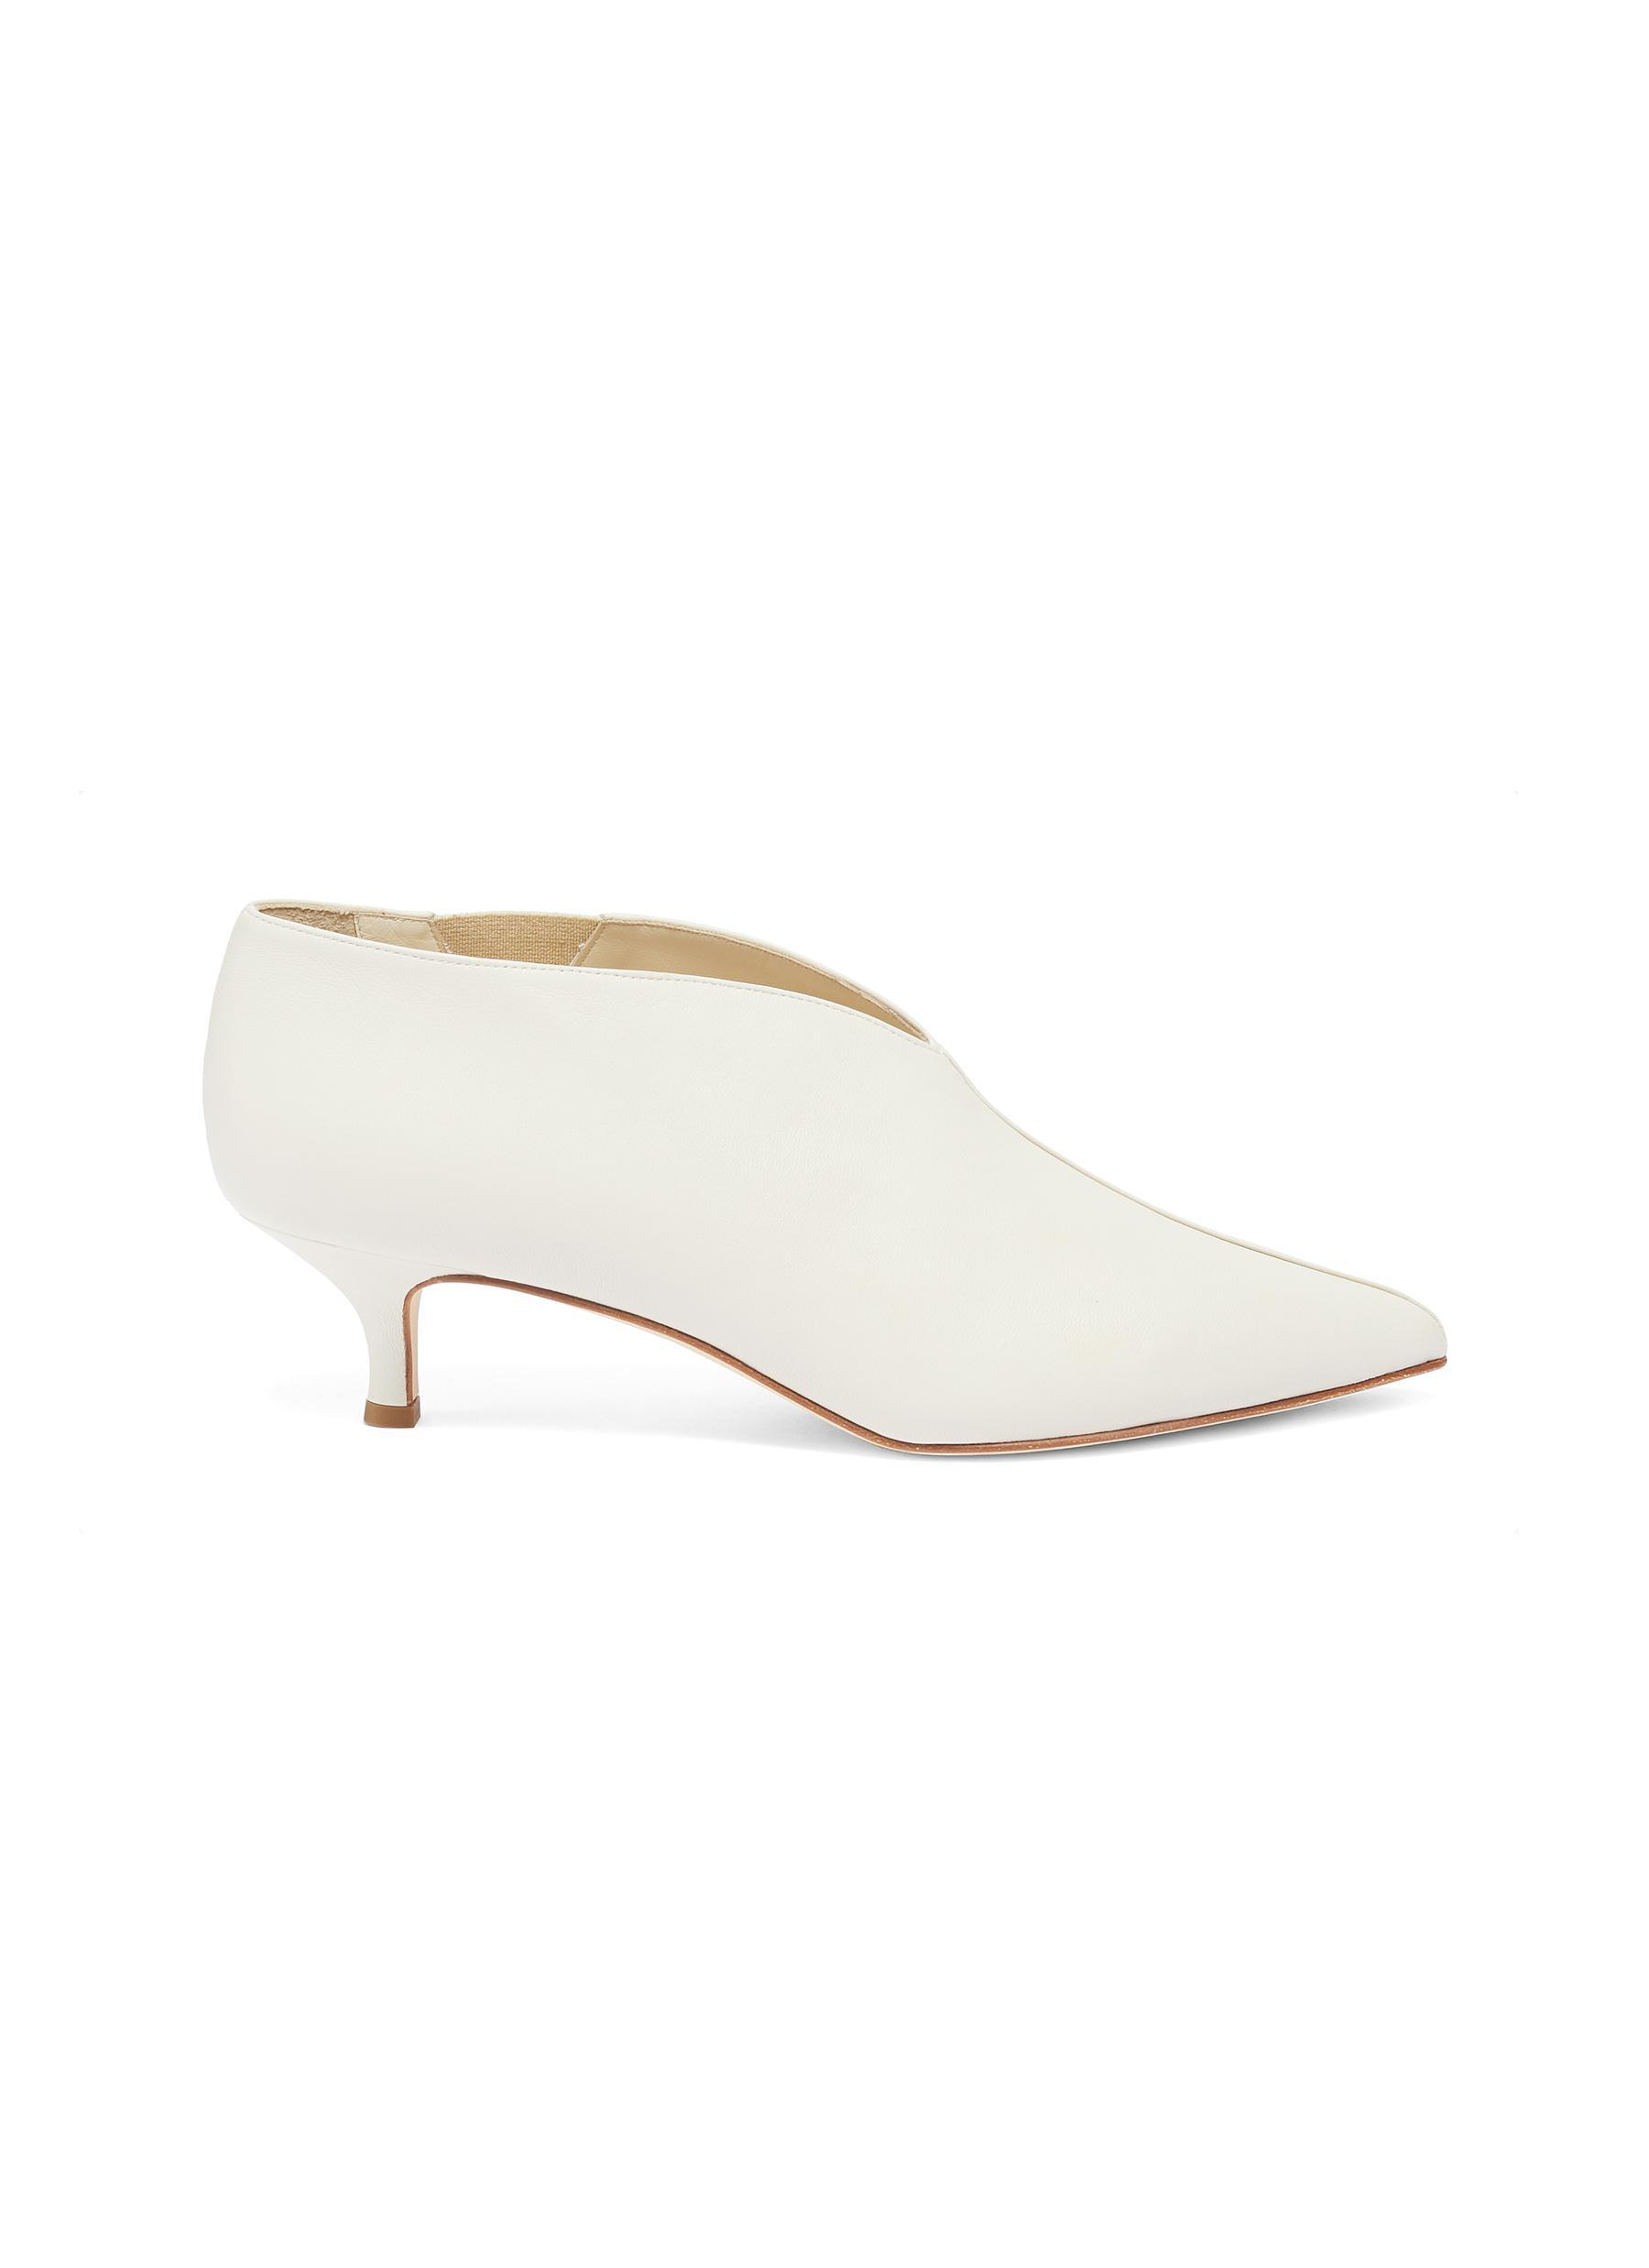 542f7aa046c9 Lyst - Tibi  joe  Leather Choked-up Pumps in White